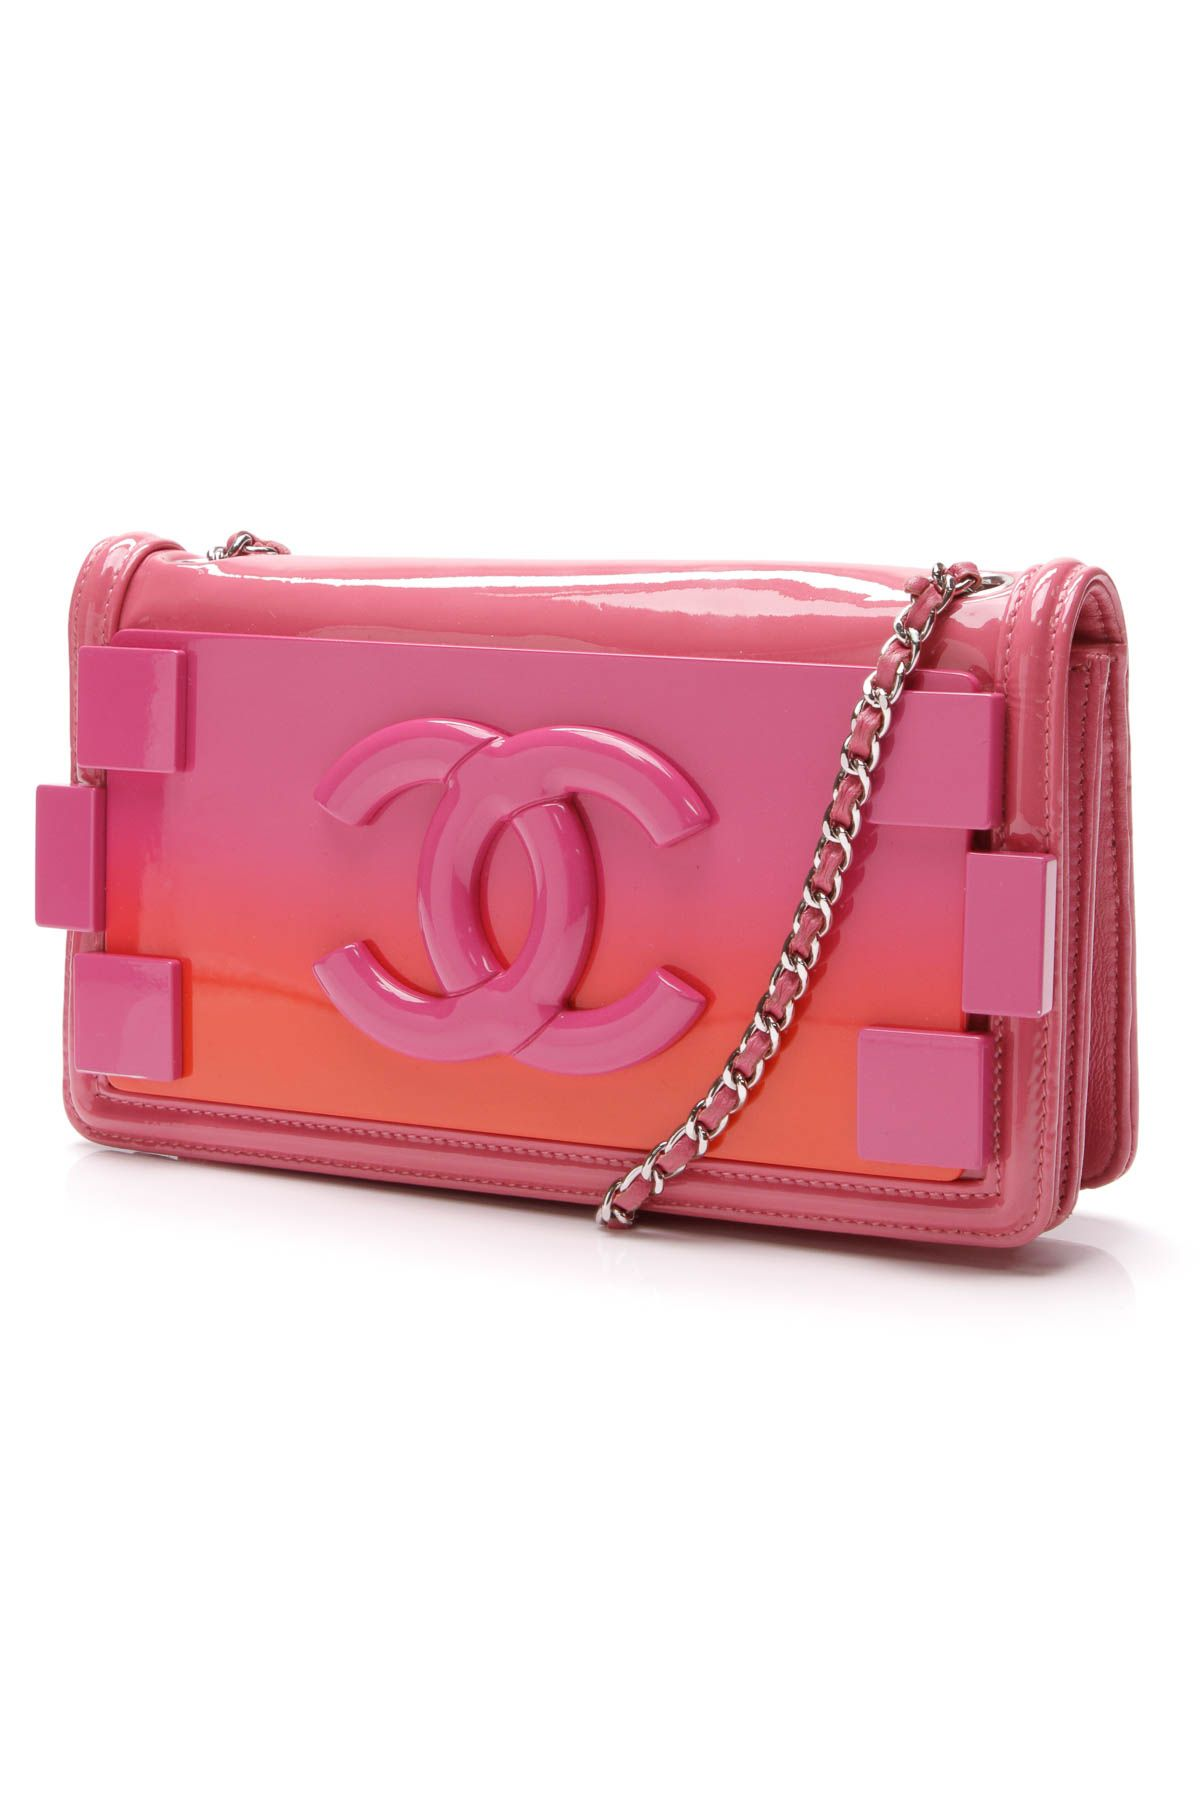 e96db6165bd86c Boy Brick Crossbody Bag - Plexiglass & Patent Leather in 2019 ...